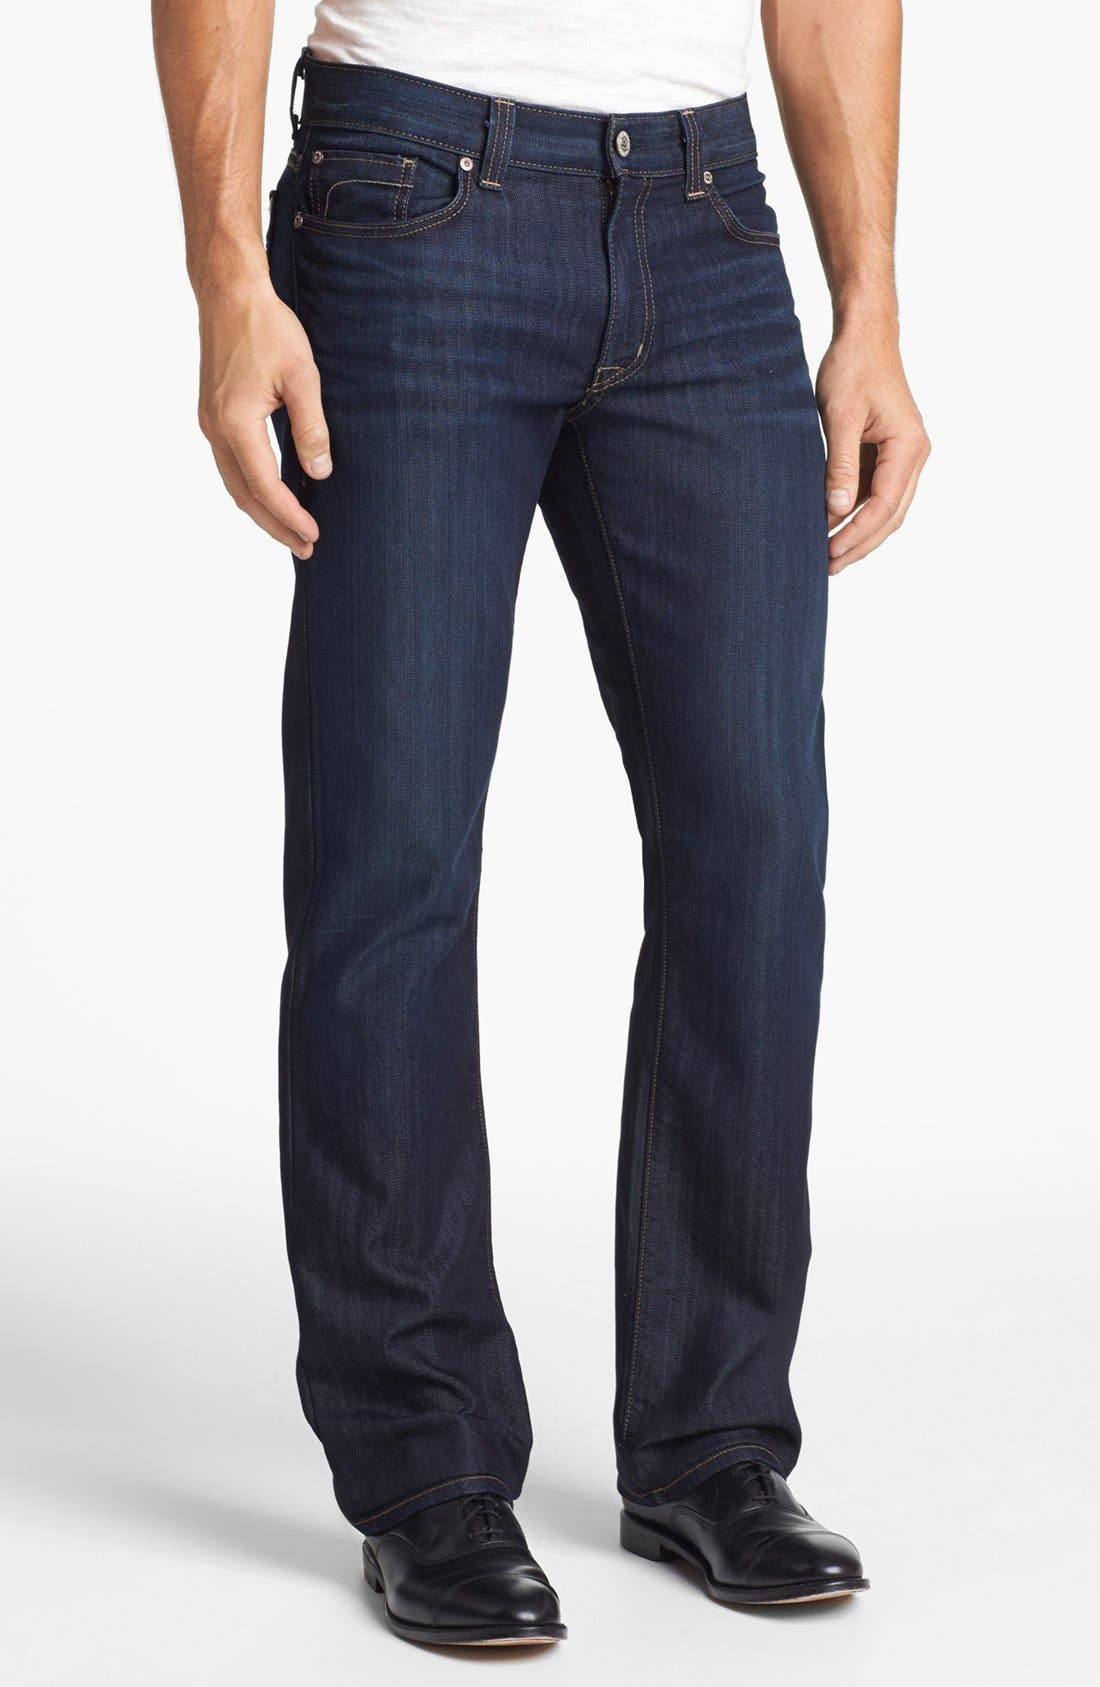 50-11 Relaxed Fit Jeans,                         Main,                         color, Calvary